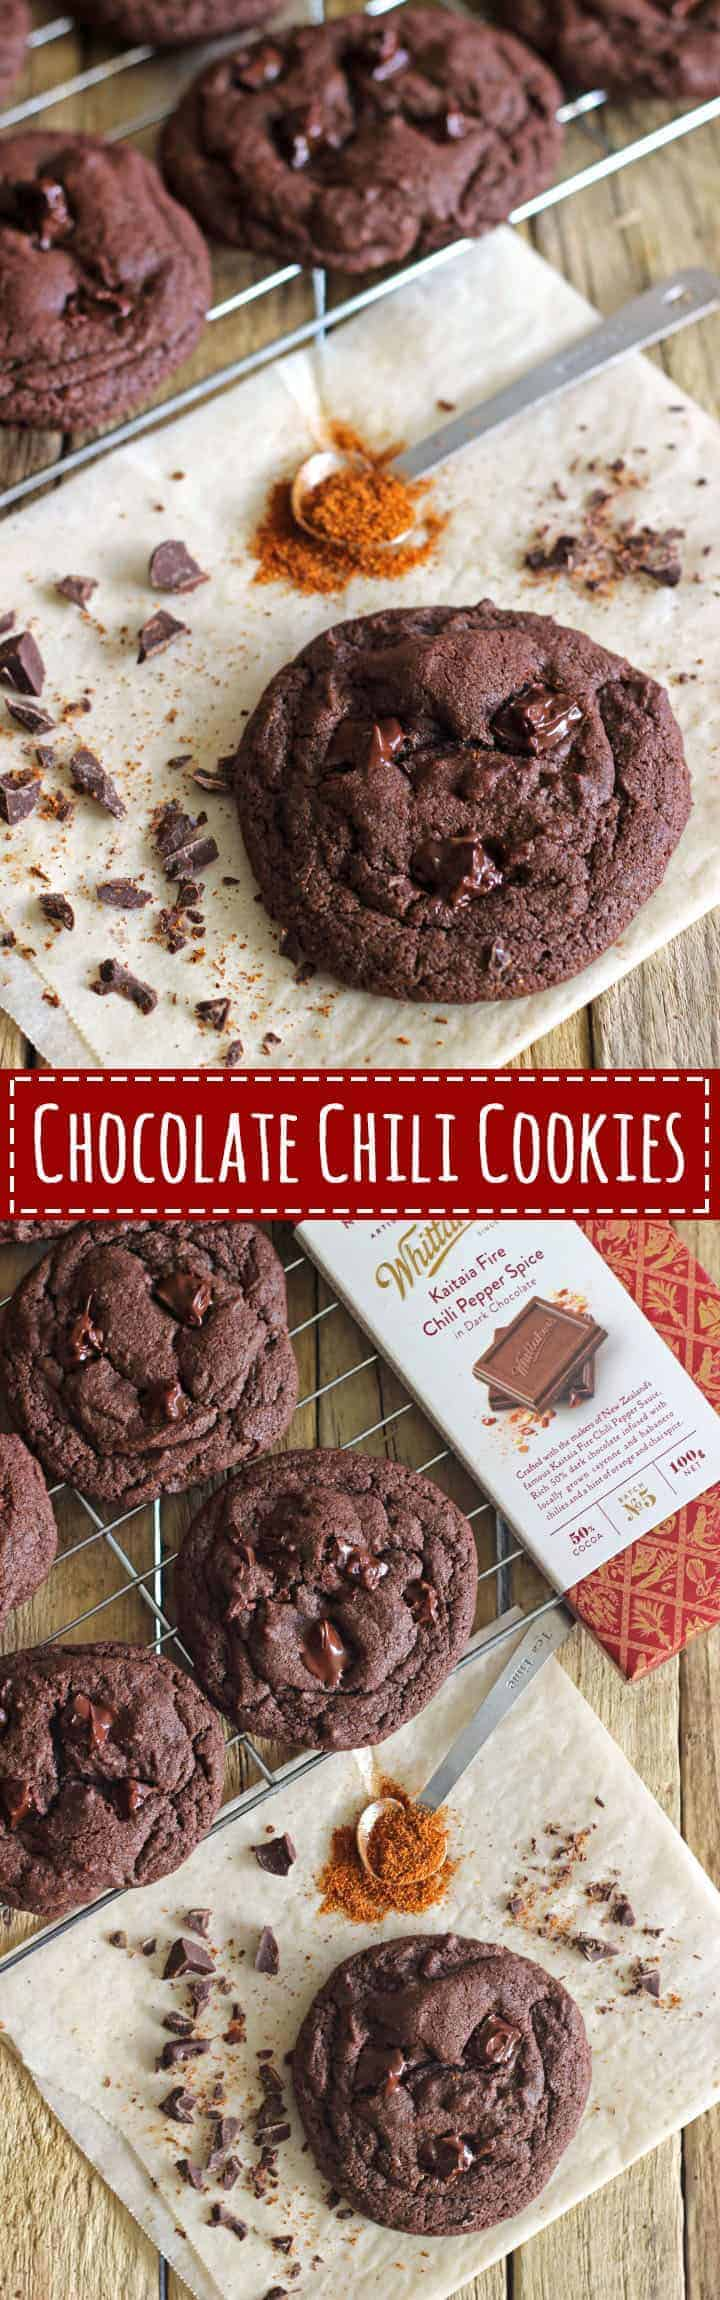 Chocolate Chili Cookie recipe at thekiwicountrygirl.com. Soft and chewy chocolate cookies with a hint of chili and cinnamon and chili chocolate chunks to boot!